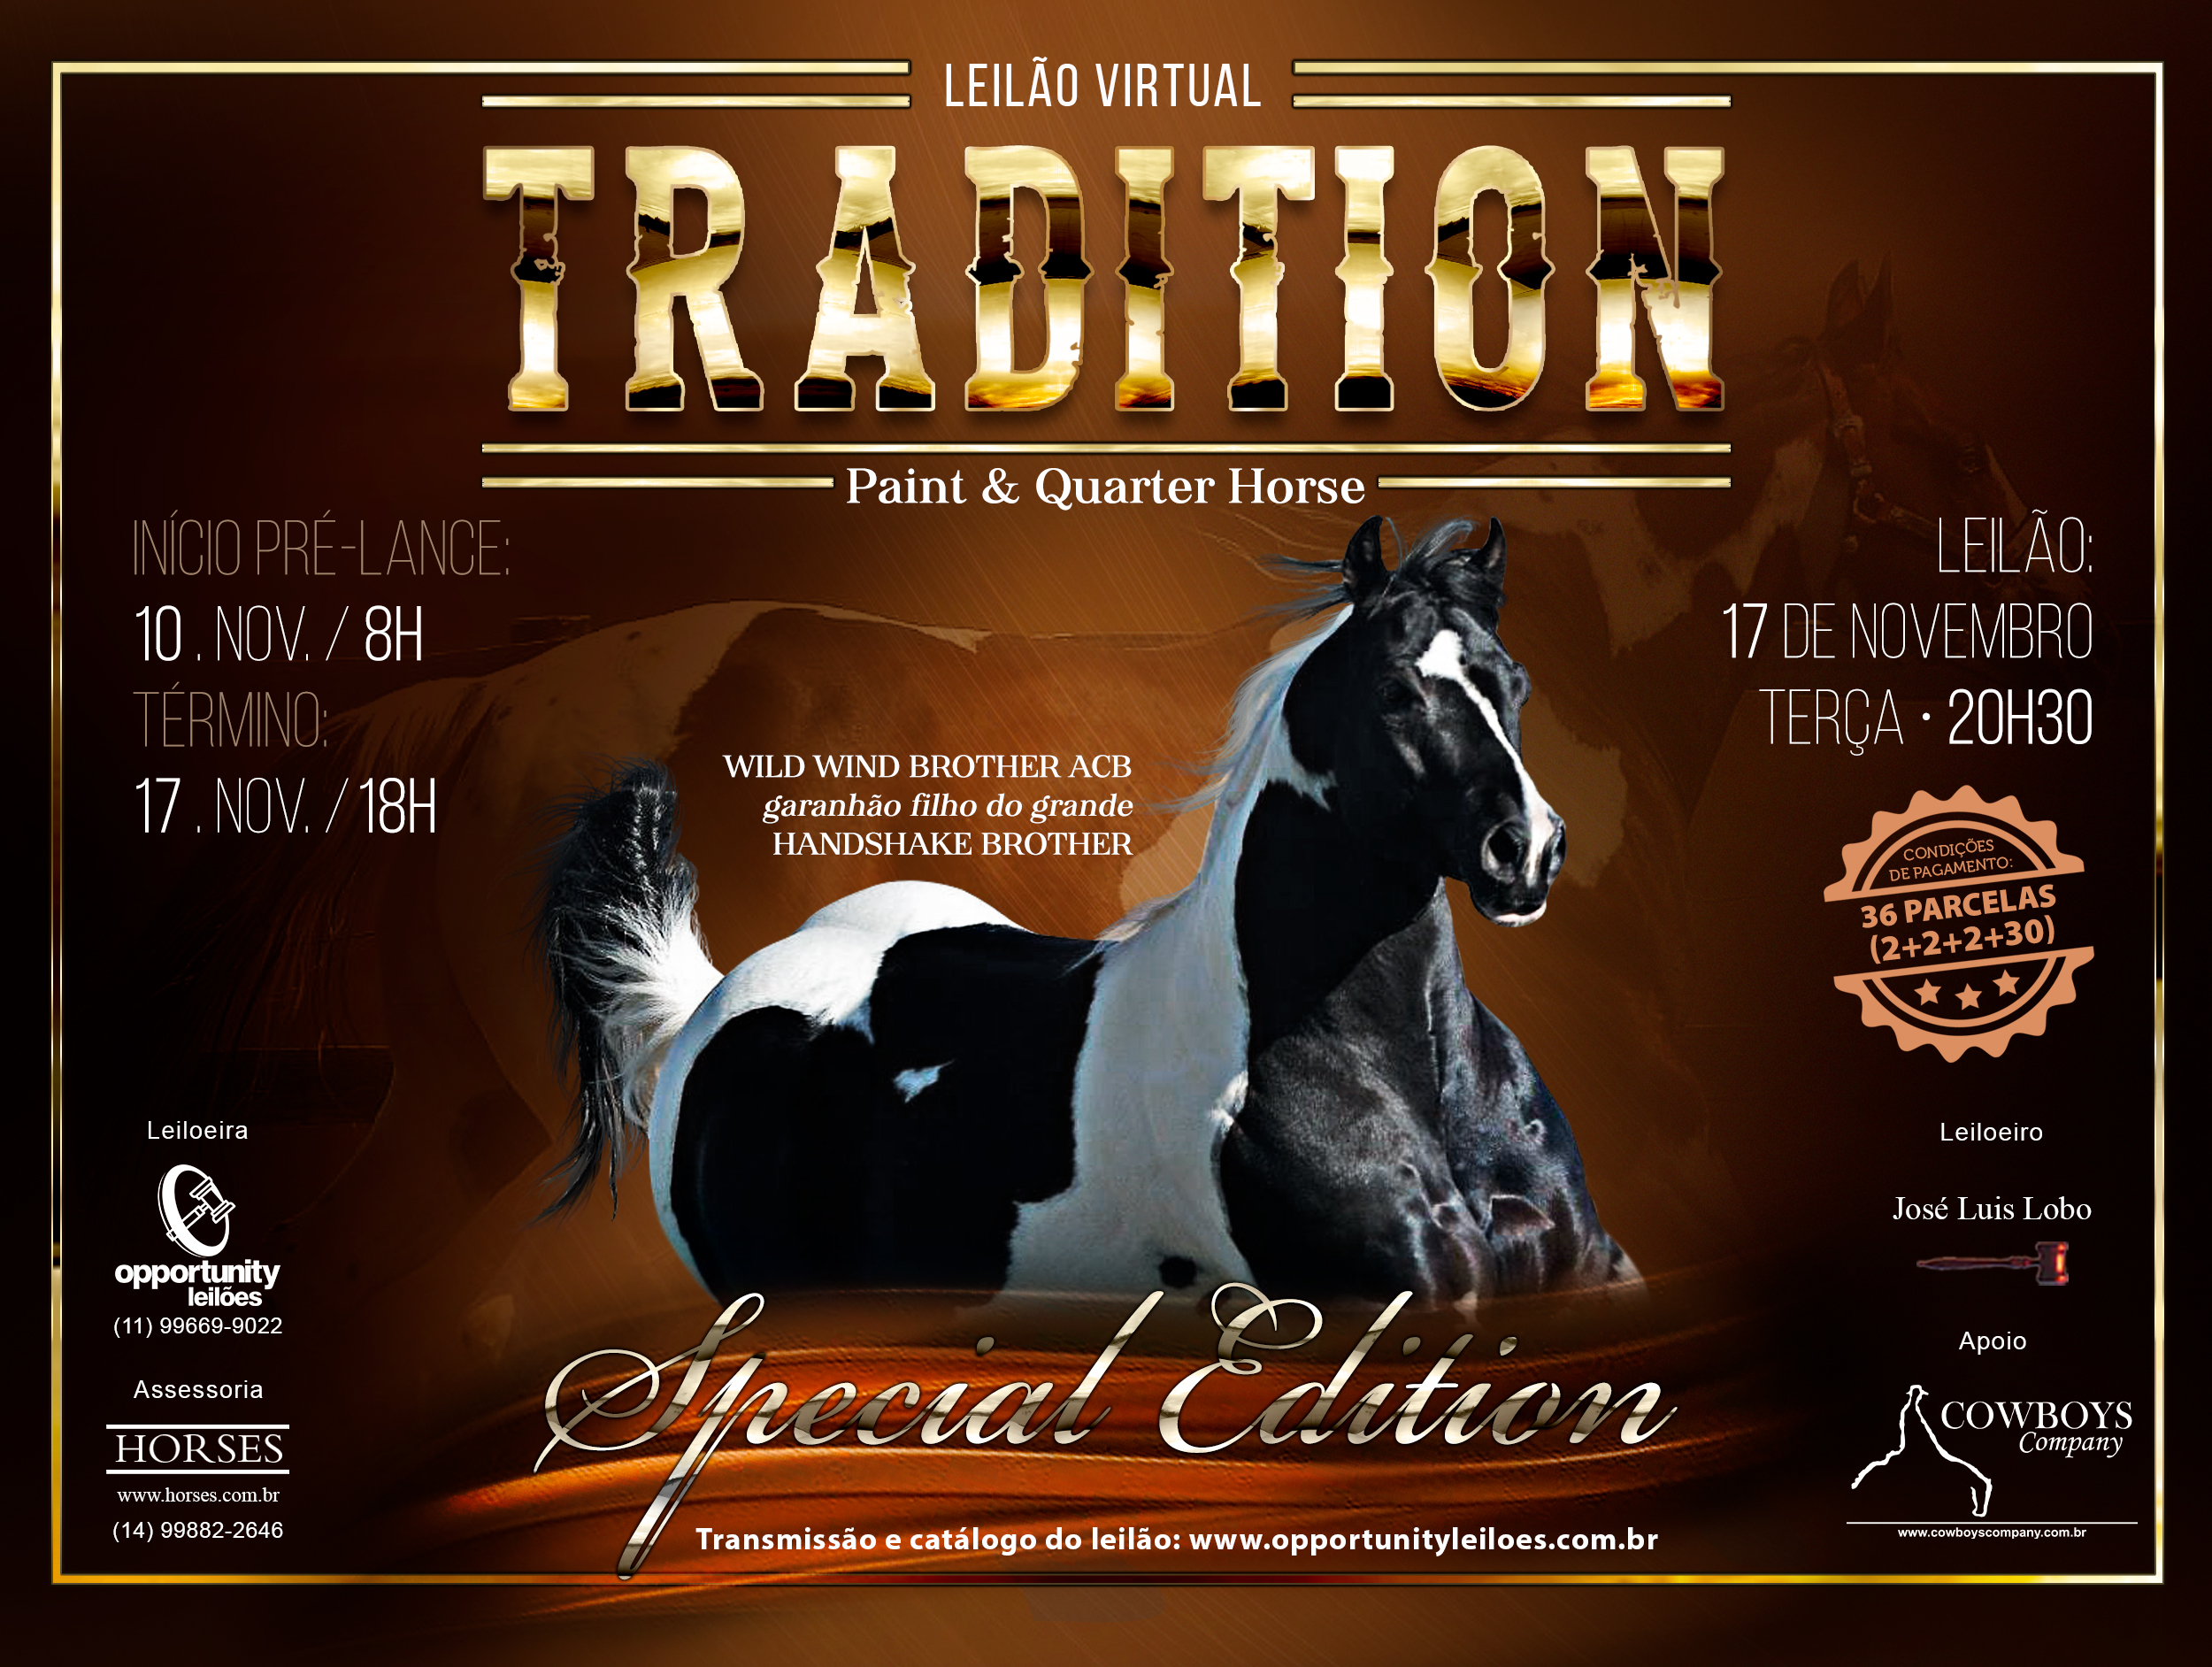 LEILÃO TRADITION - PAINT & QUARTER HORSE - SPECIAL EDITION